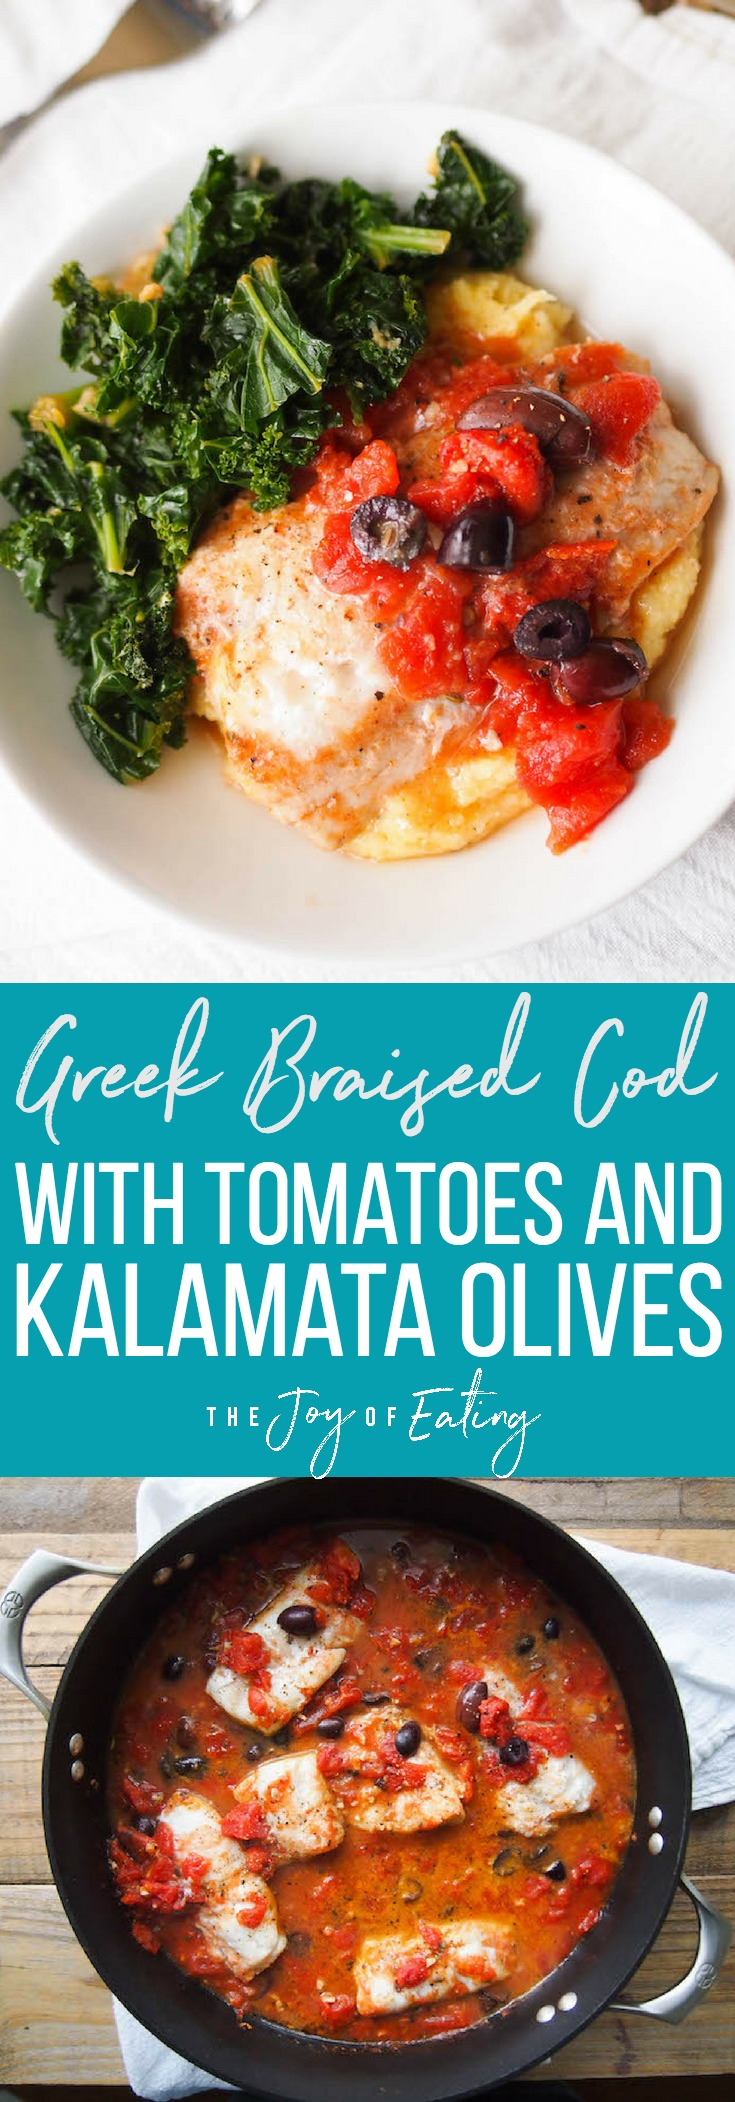 Easy Greek braised cod